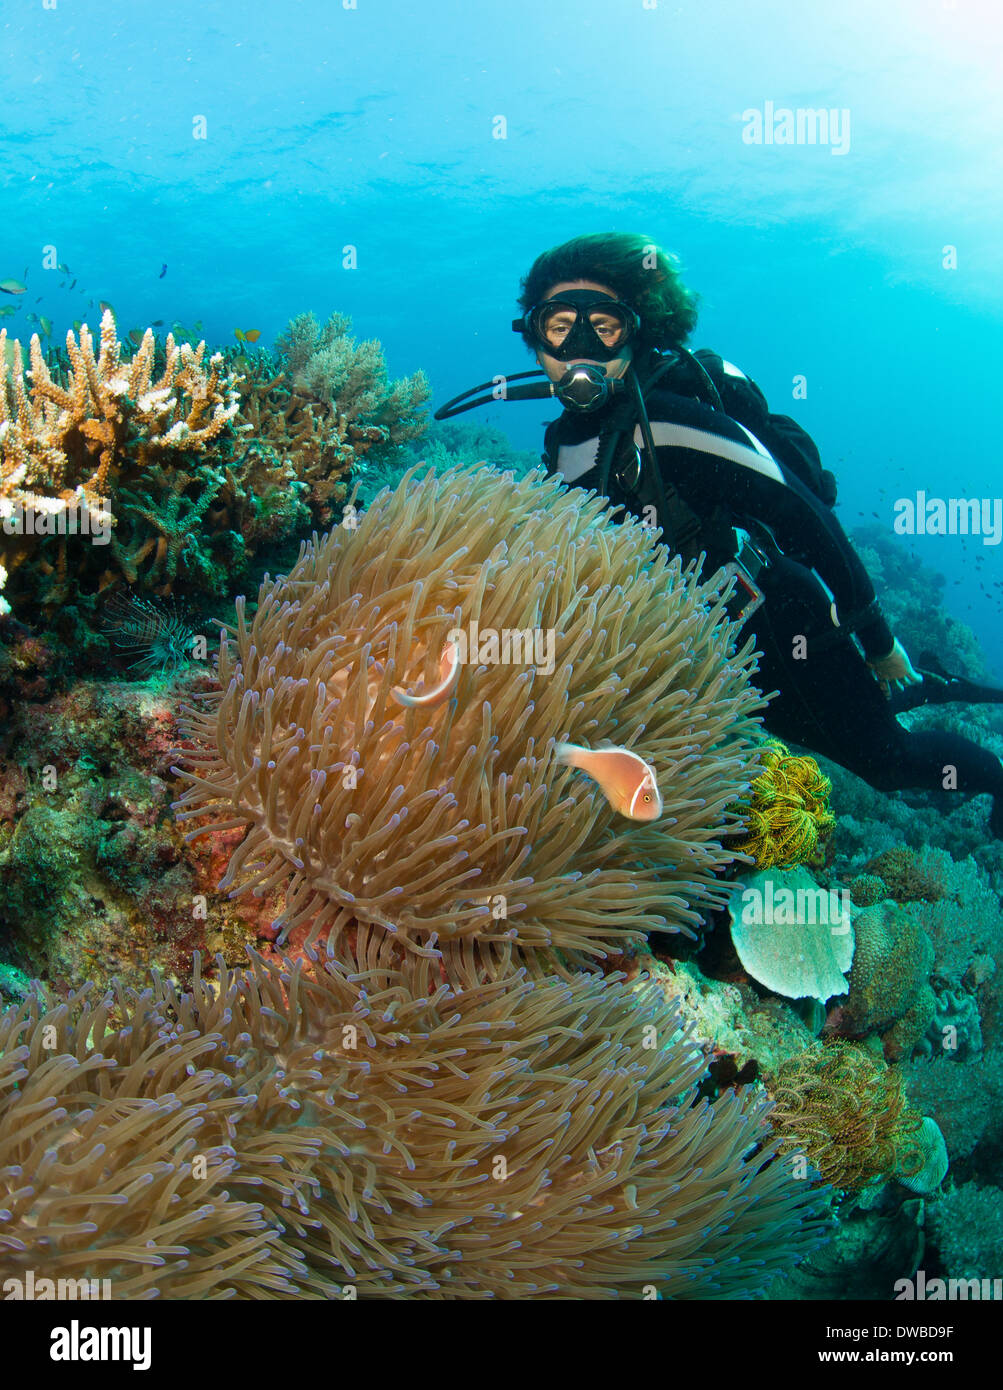 Diver and anemone. - Stock Image